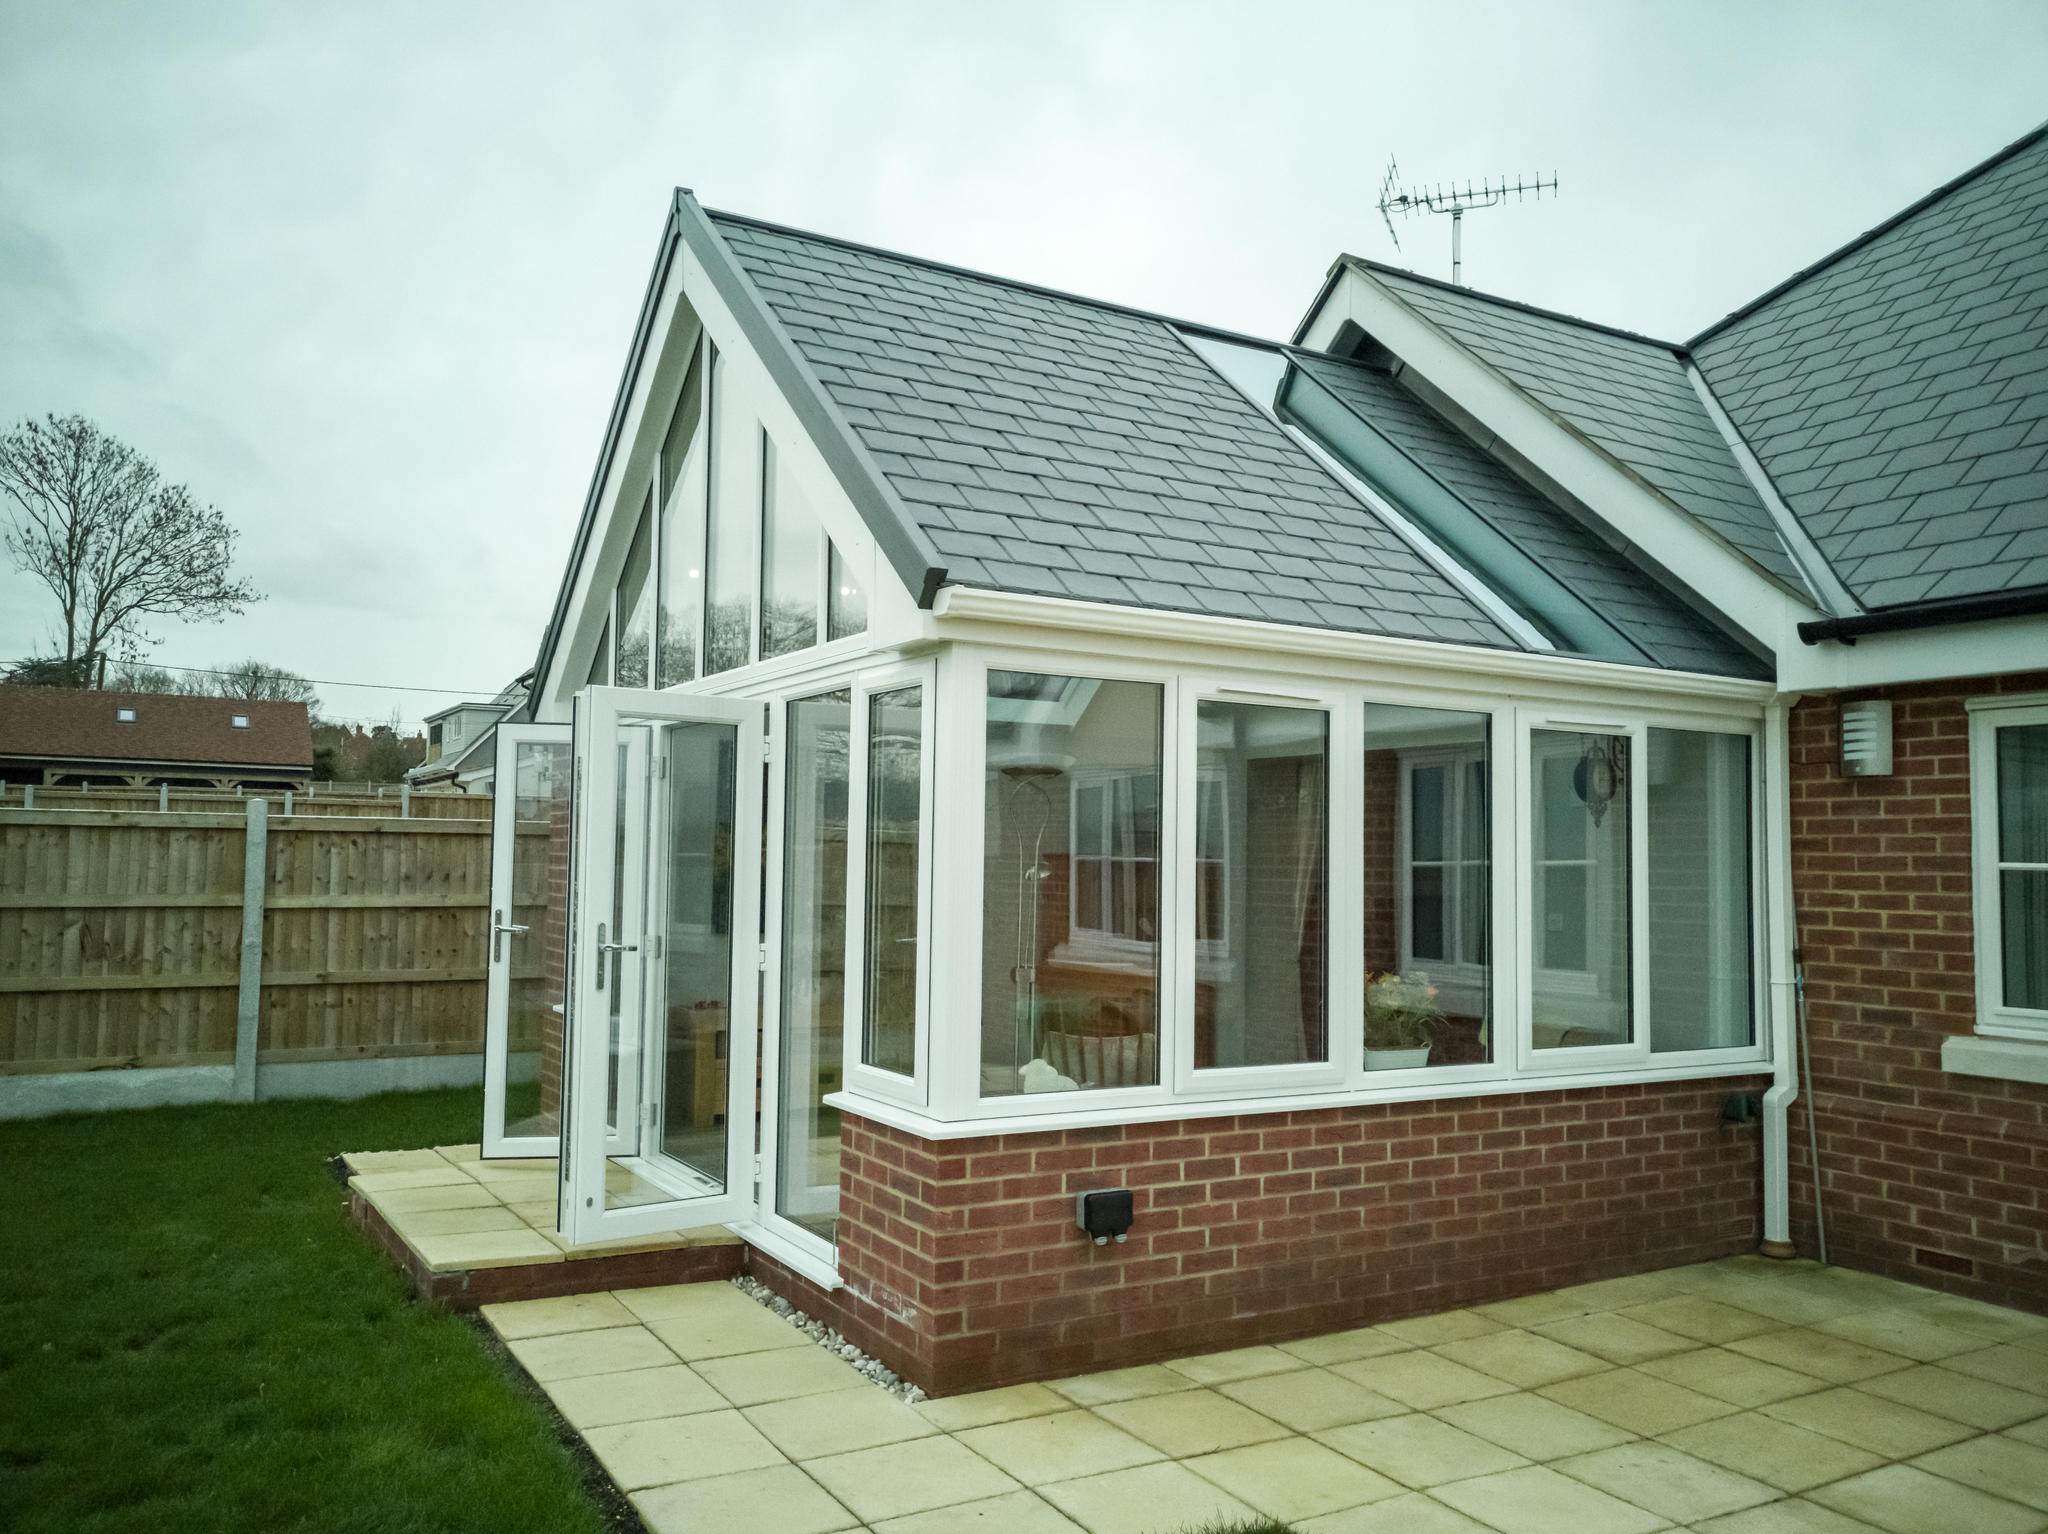 Example of a spacious and comfortable conservatory build.